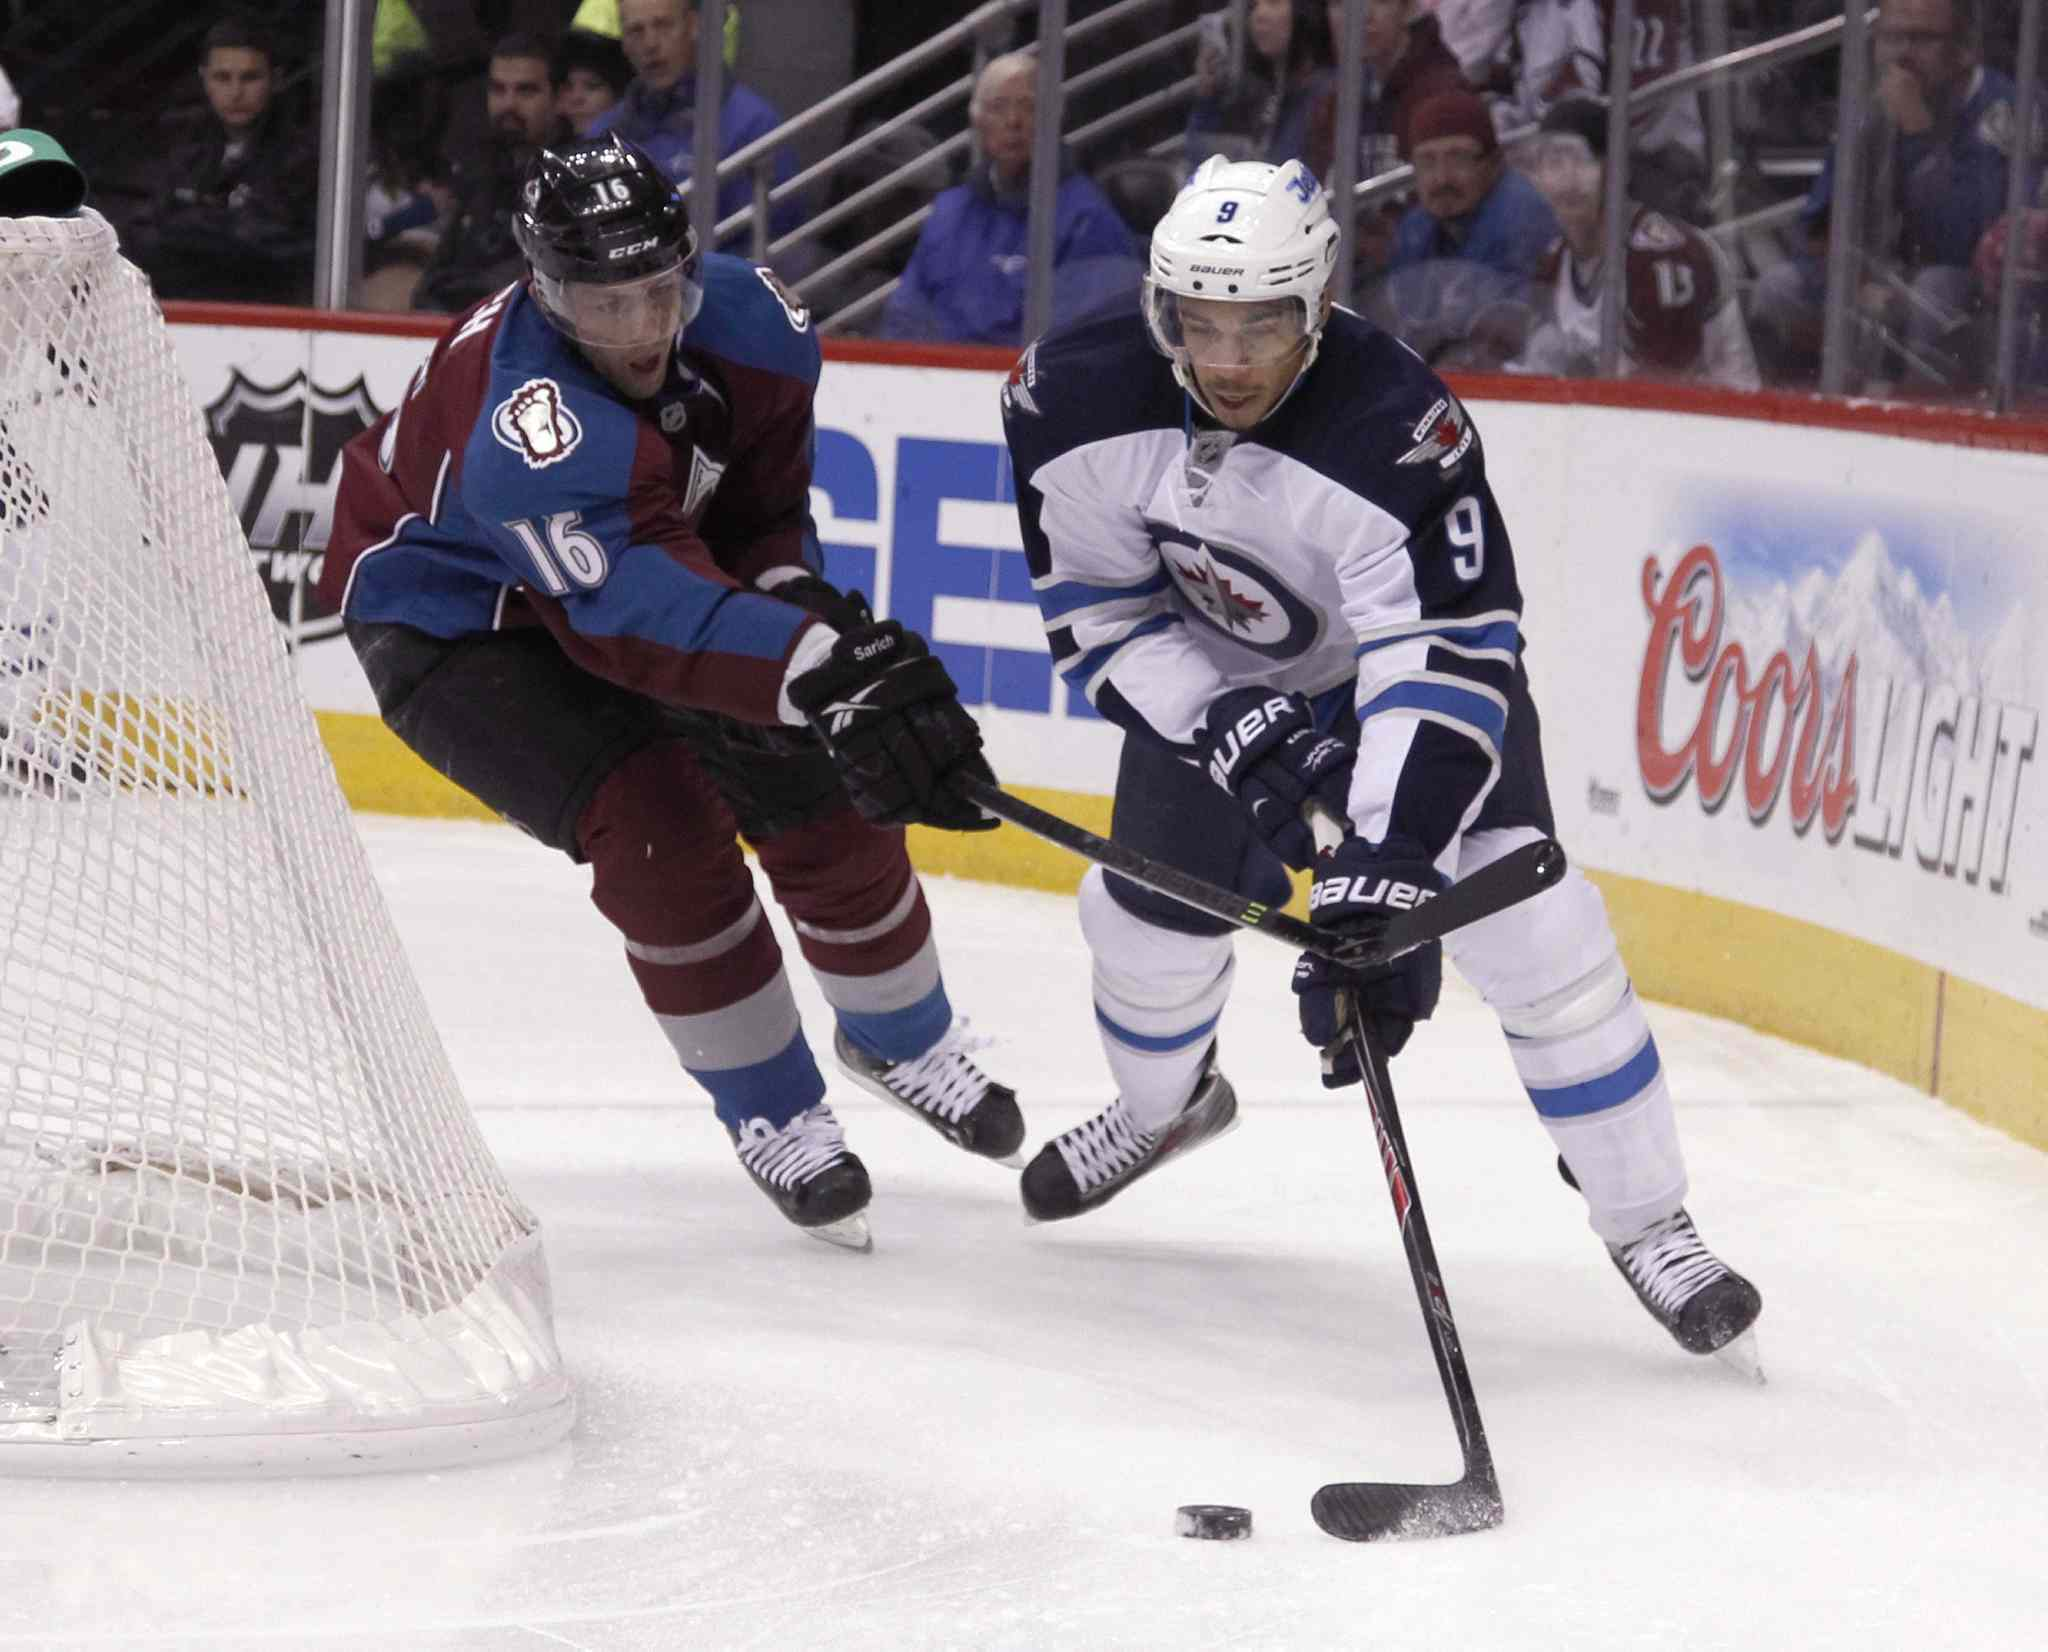 Evander Kane tries a wraparound as Avalanche defenceman Cory Sarich gives chase in the first period.